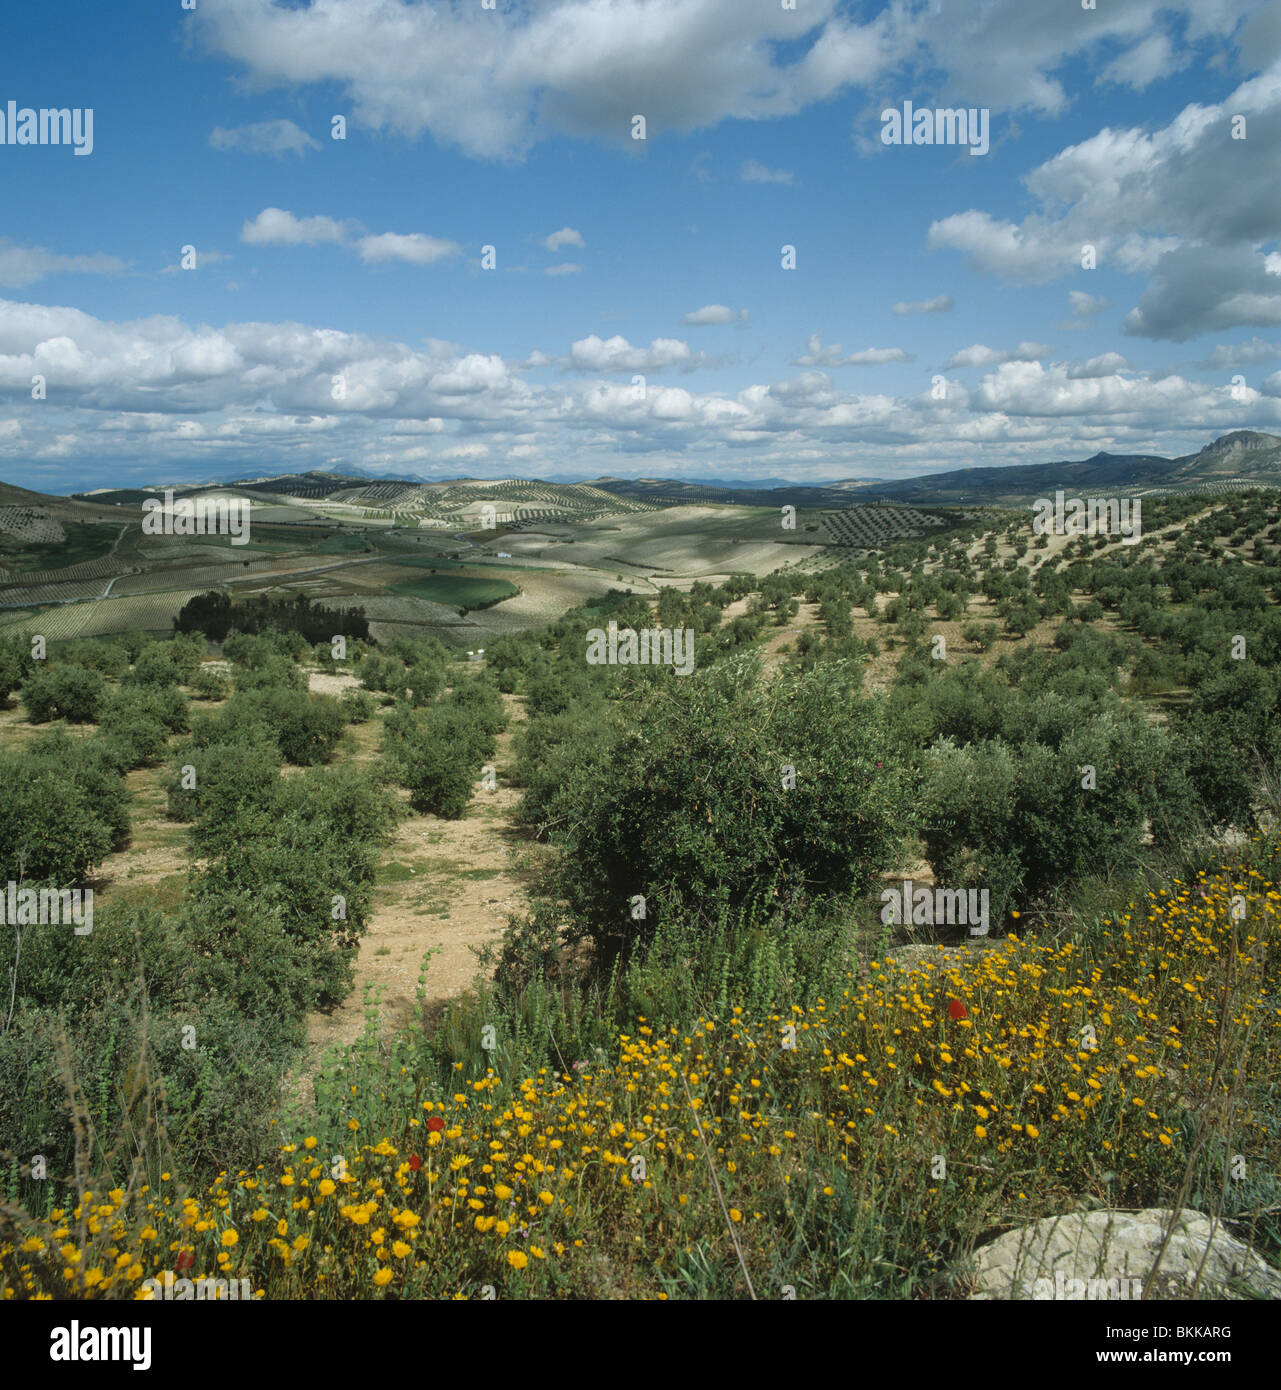 Olive groves on a fine spring day in Andalusia, Spain - Stock Image